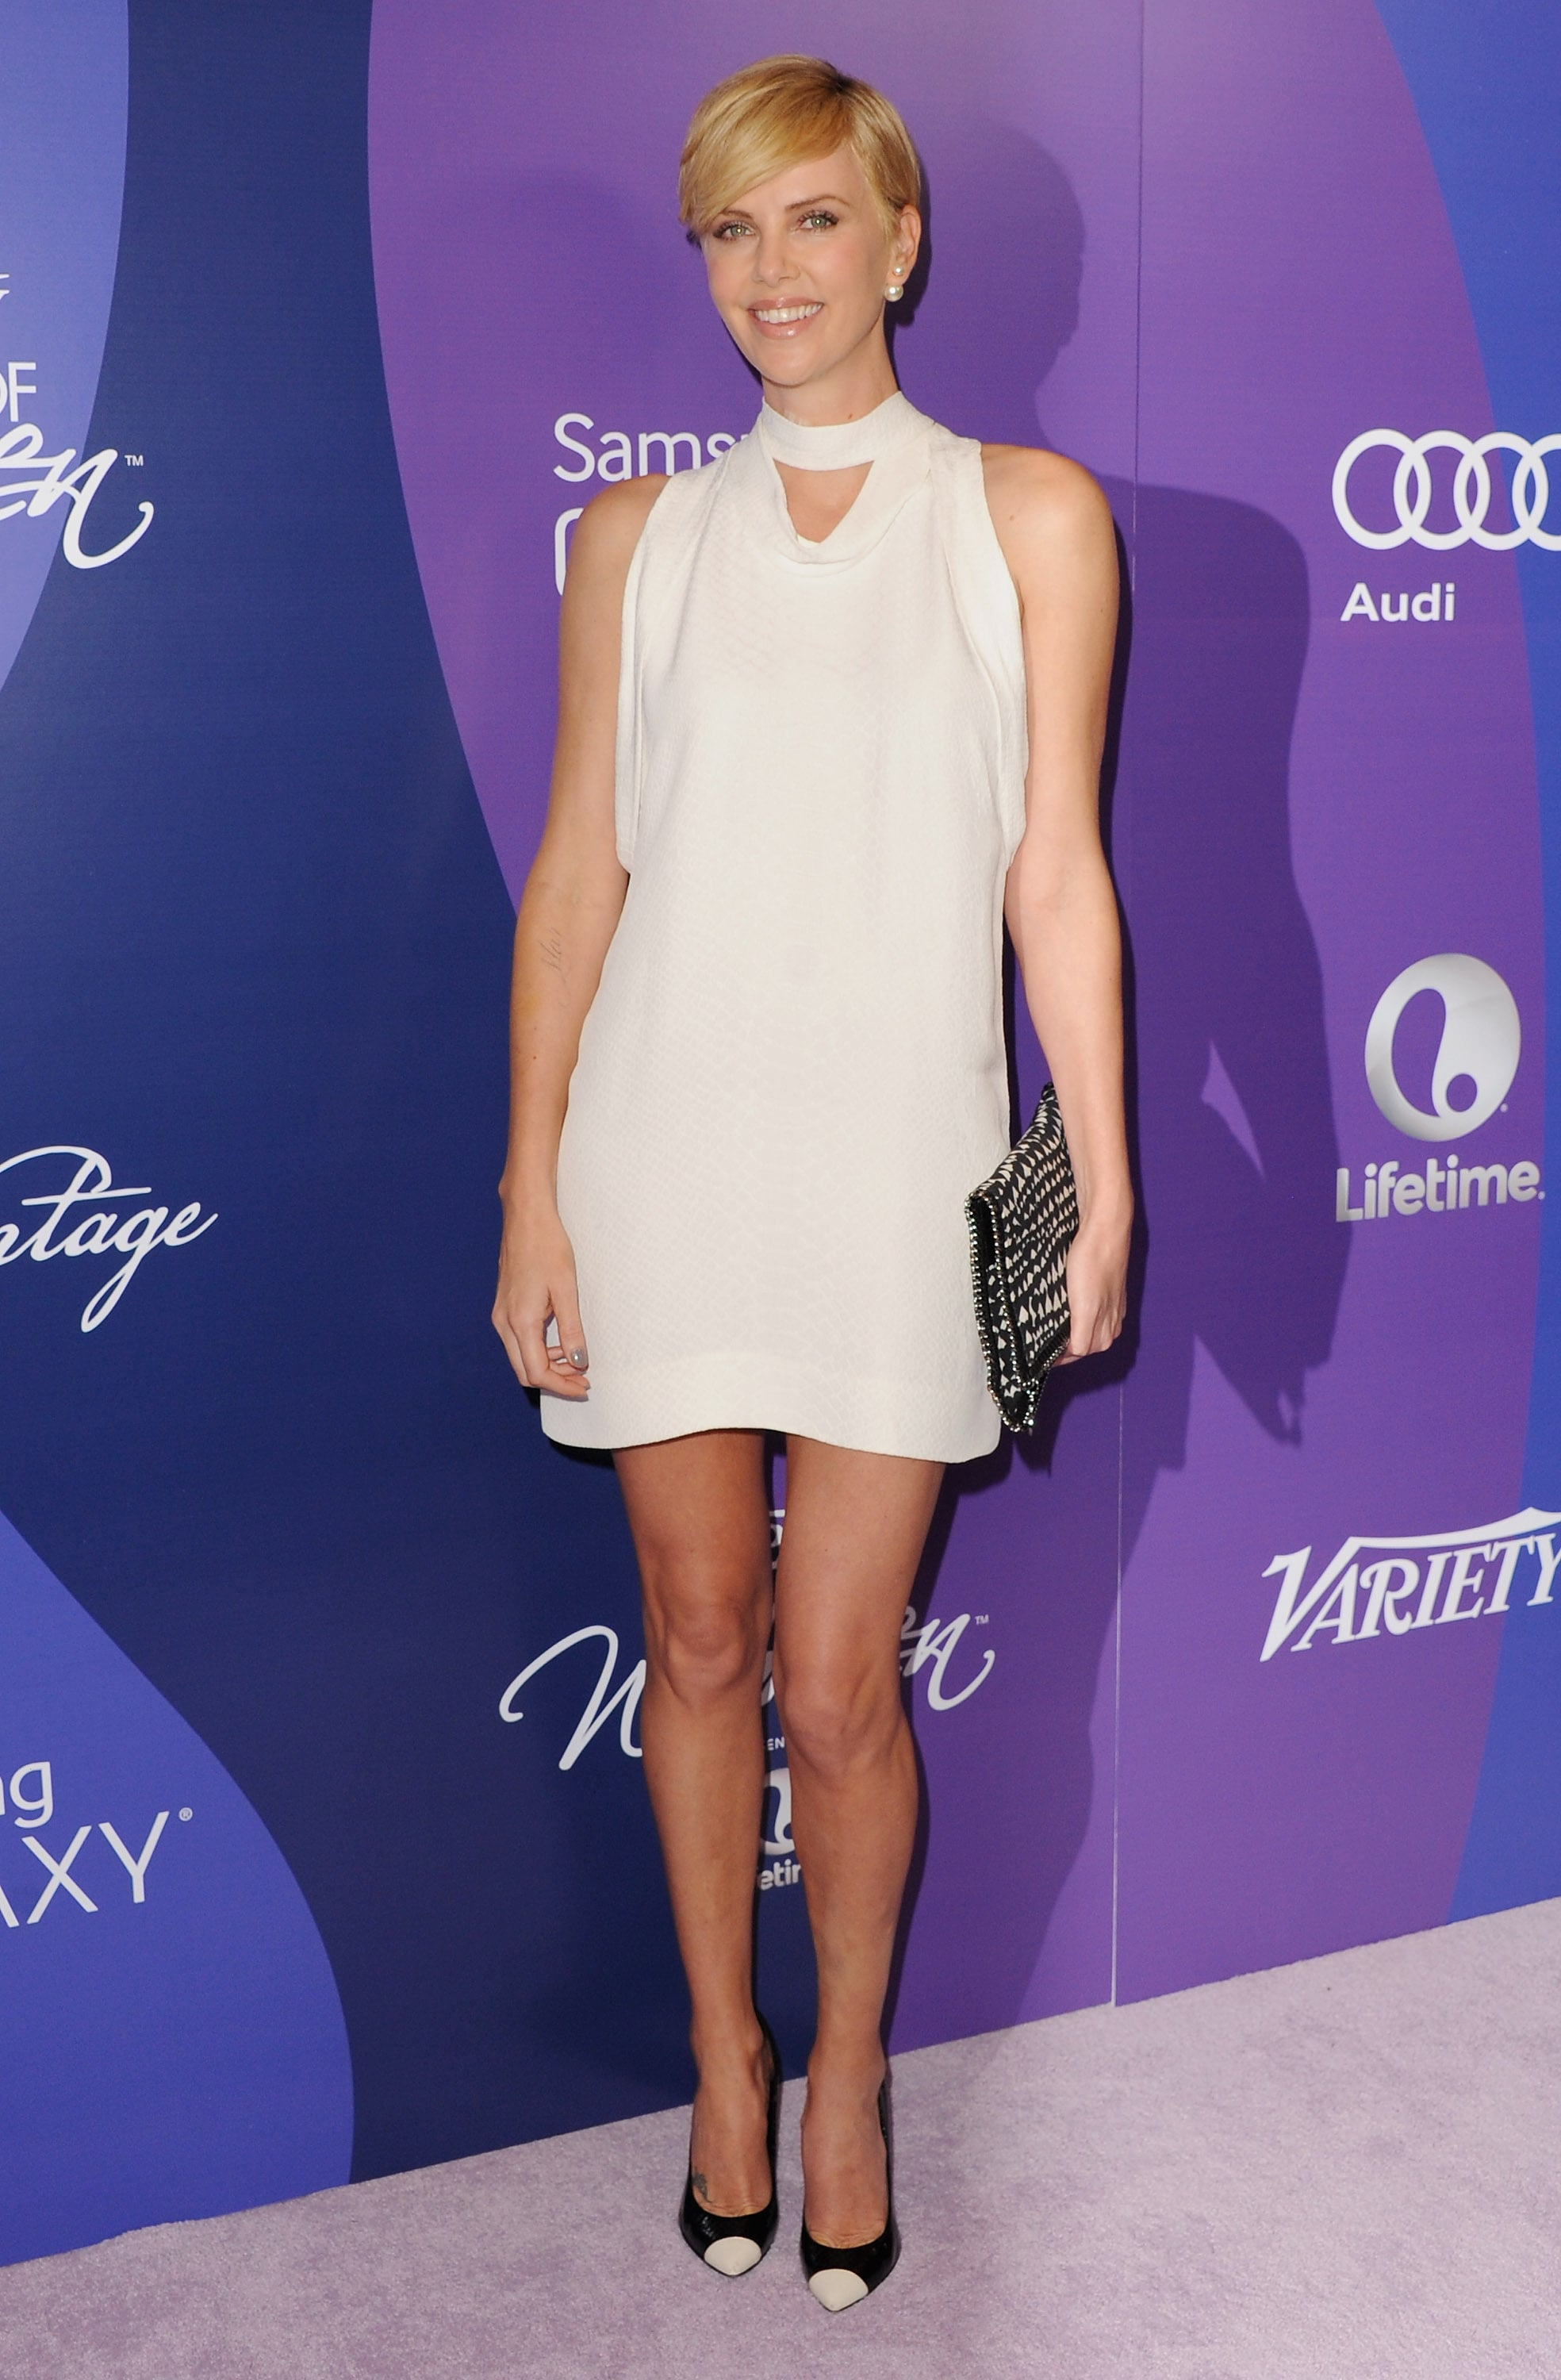 Charlize accented her white Stella McCartney dress with black accessories, making for a look that's both edgy and flirty.